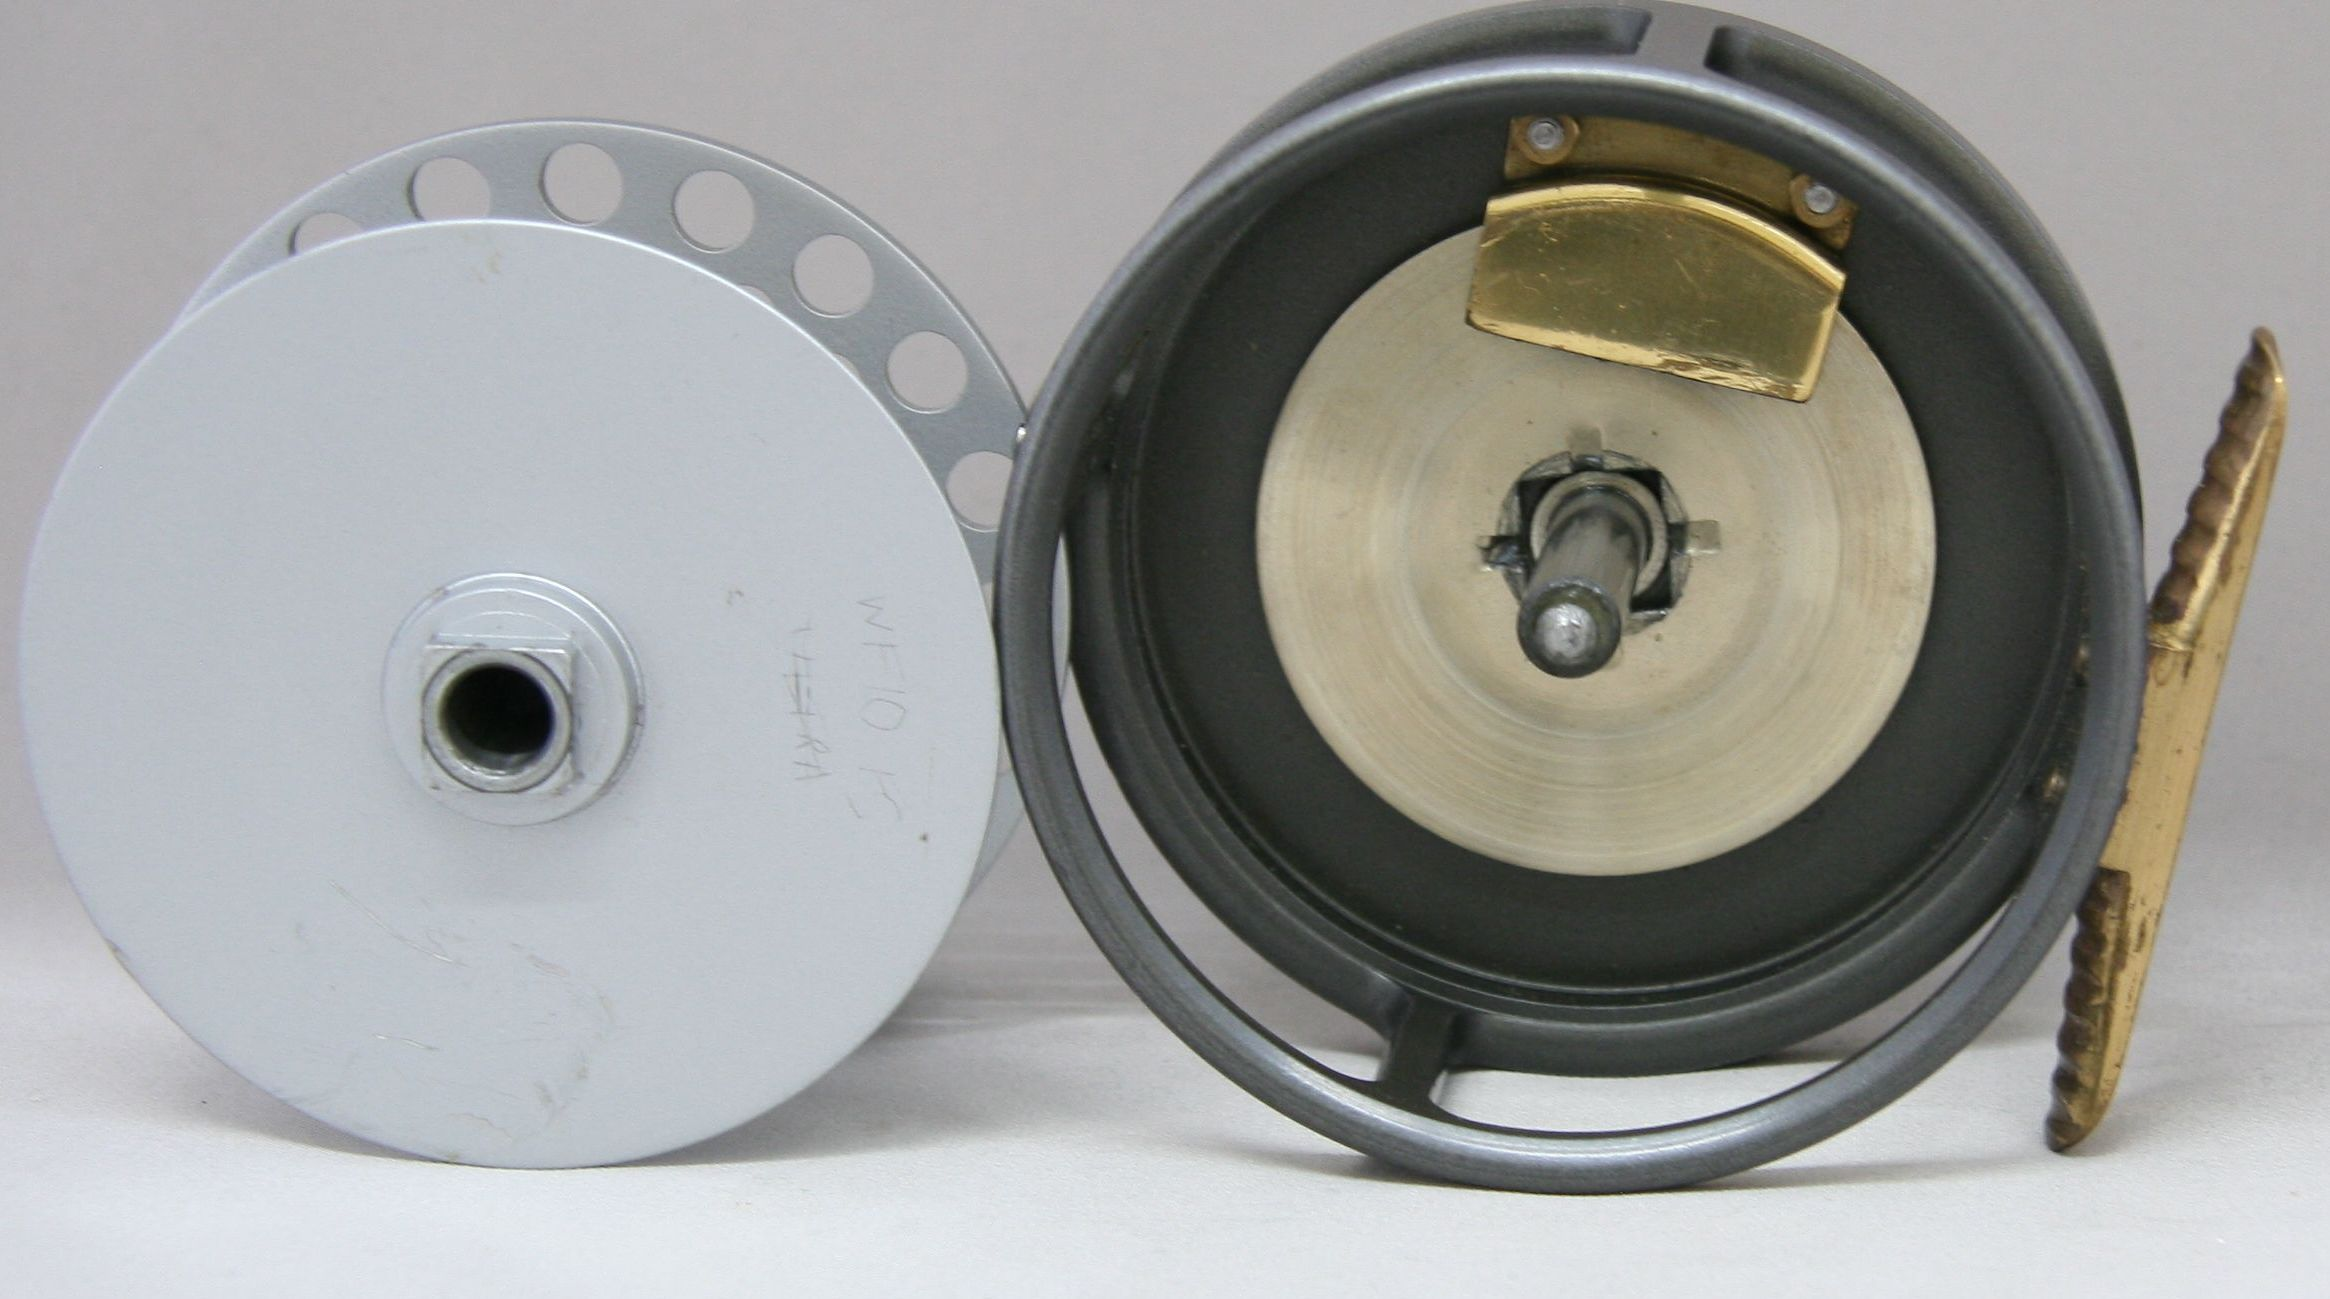 Hardy Bros. The Husky fly reel. Made in England. Excellent salmon or steelhead 1980's reel. Diameter 3 3/8 inches, spool width 1 1/8 inches, overall width 1 5/8 inches. Weighs 7 1/2 oz. Line weight 7/8. Disc drag. Ribbed brass foot. Single screw nickel silver line guard Two screw spool latch. LHW/RHW. Includes original Hardy black vinyl case. Excellent condition with some minor finish wear.